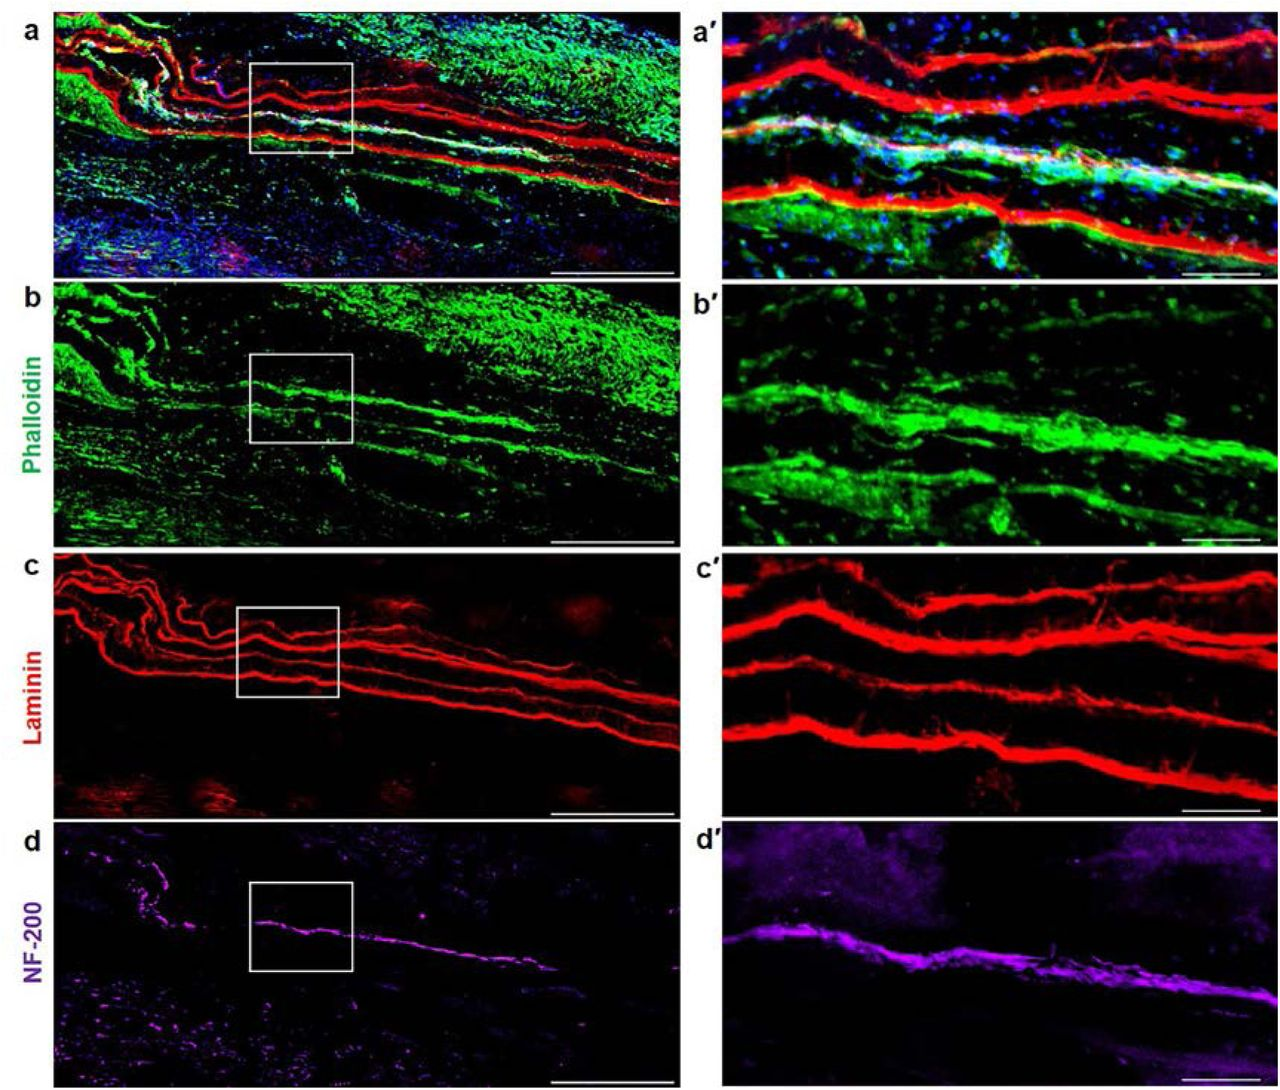 Cellular and Morphological Evaluation of Pre-Innervated Constructs at Acute Time Point Following Implantation in a VML Model. a-d ) Longitudinal sections near the repair site of animals implanted with nanofibers with motor neurons + myocytes (MN-MYO). The nanofiber sheets were coated with Laminin prior to culturing cells and hence the stacked sheets were identified based on Laminin stain (red). Scale: 500µm. a′-d′) Magnified view of the region inside the white box. Thick bundles of myocytes (Phalloidin: green) and motor axons (NF-200: purple) were observed within the stacked nanofiber sheets. Scale: 100µm.